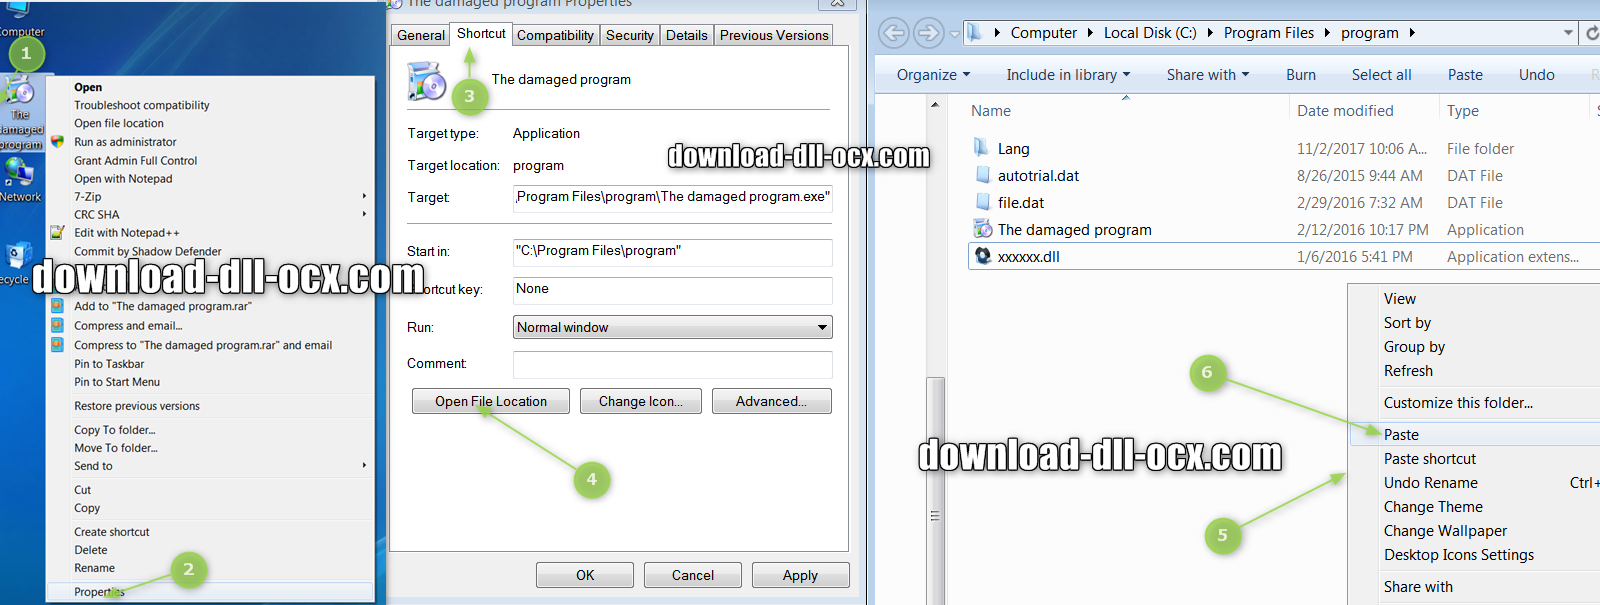 how to install importOE.dll file? for fix missing